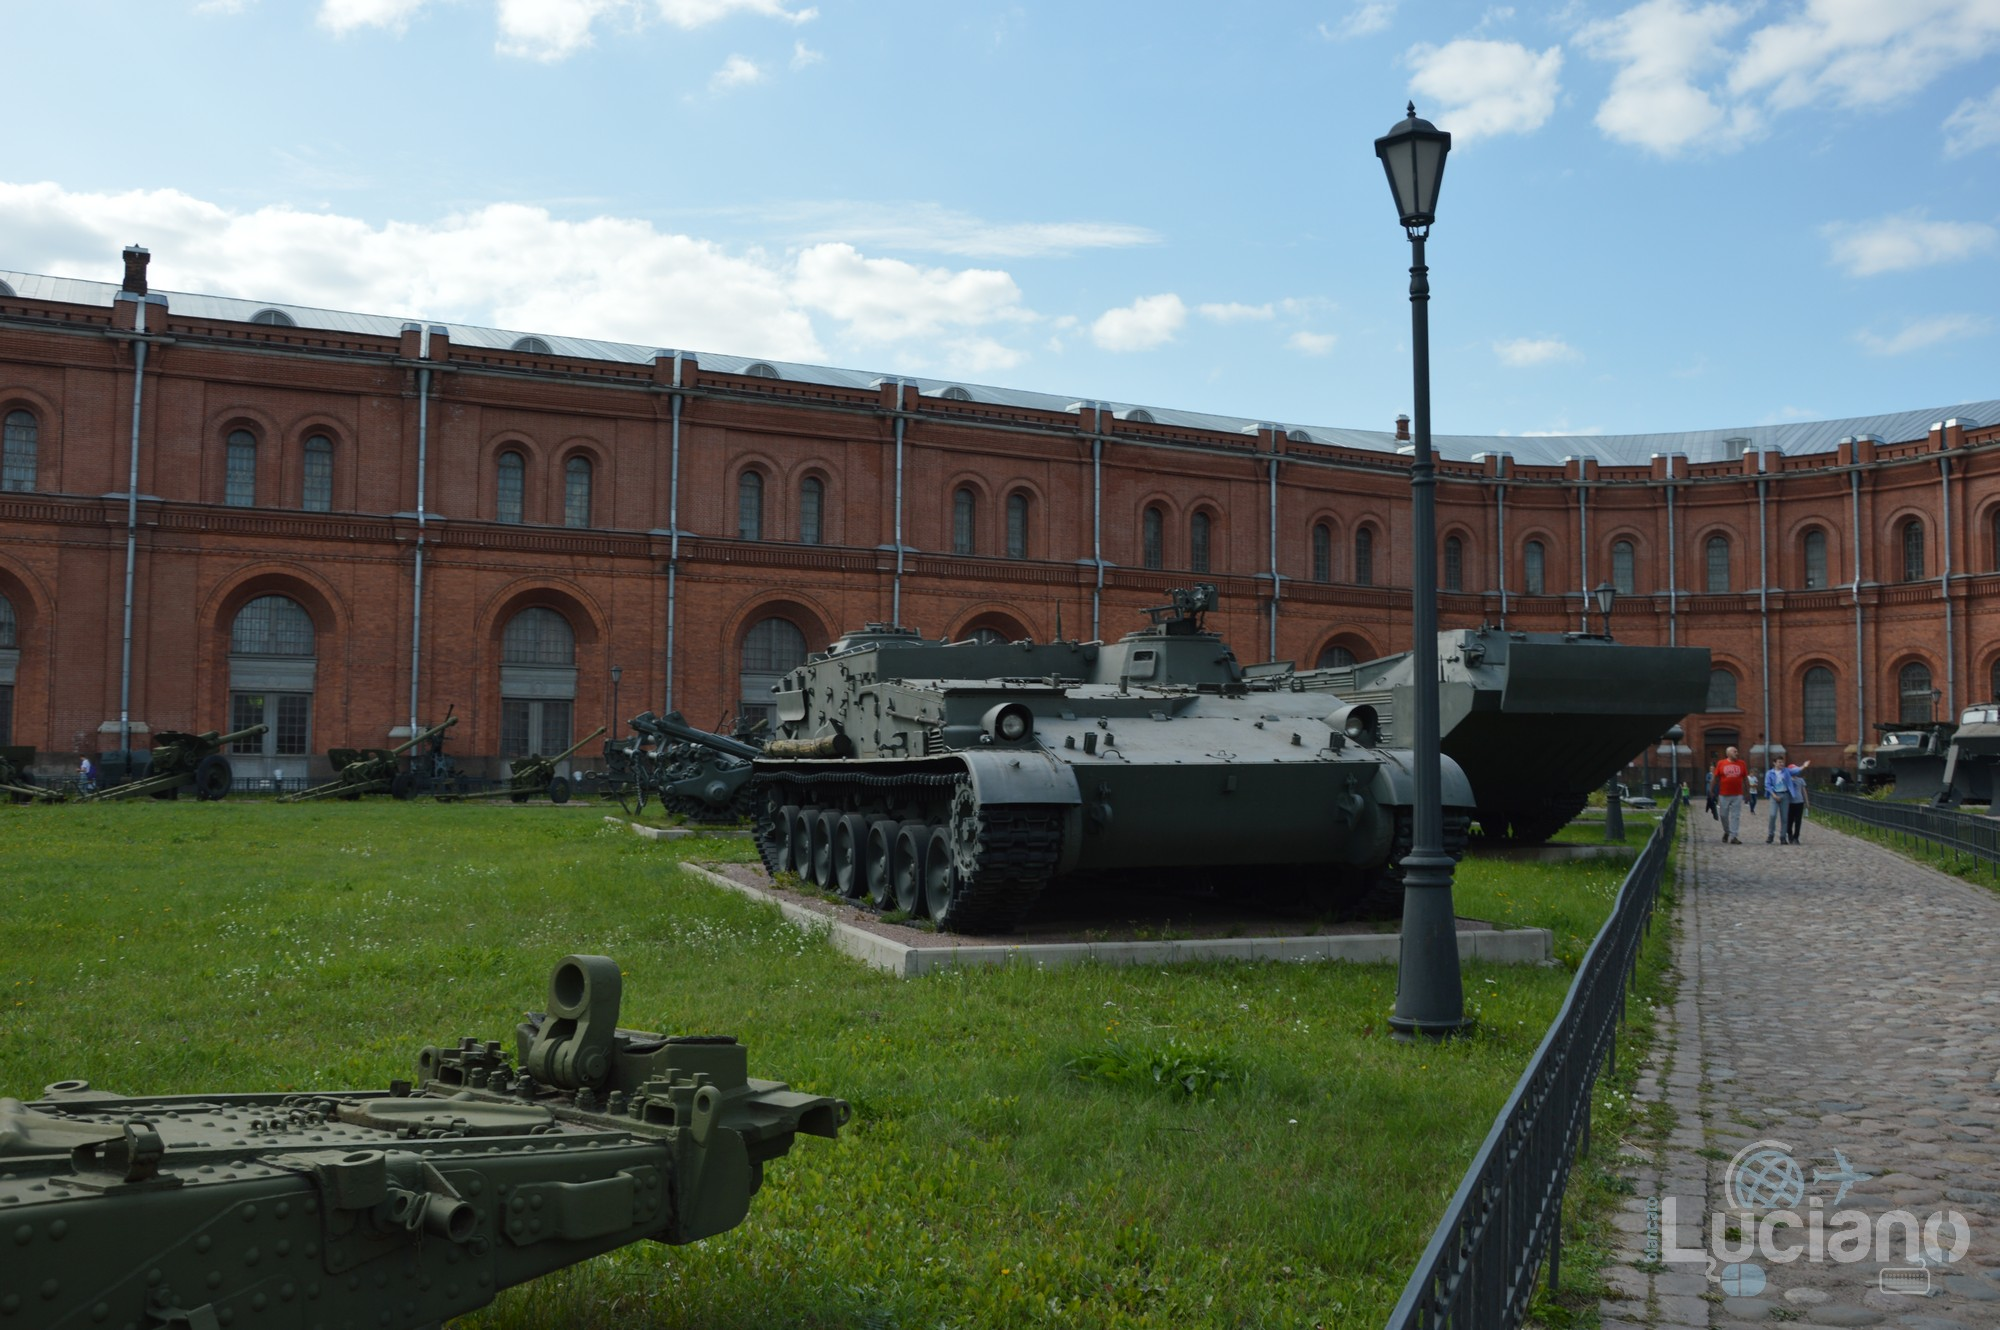 Military-Historical-Museum-of-Artillery-Engineer-and-Signal-Corps-St-Petersburg-Russia-Luciano-Blancato- (74)